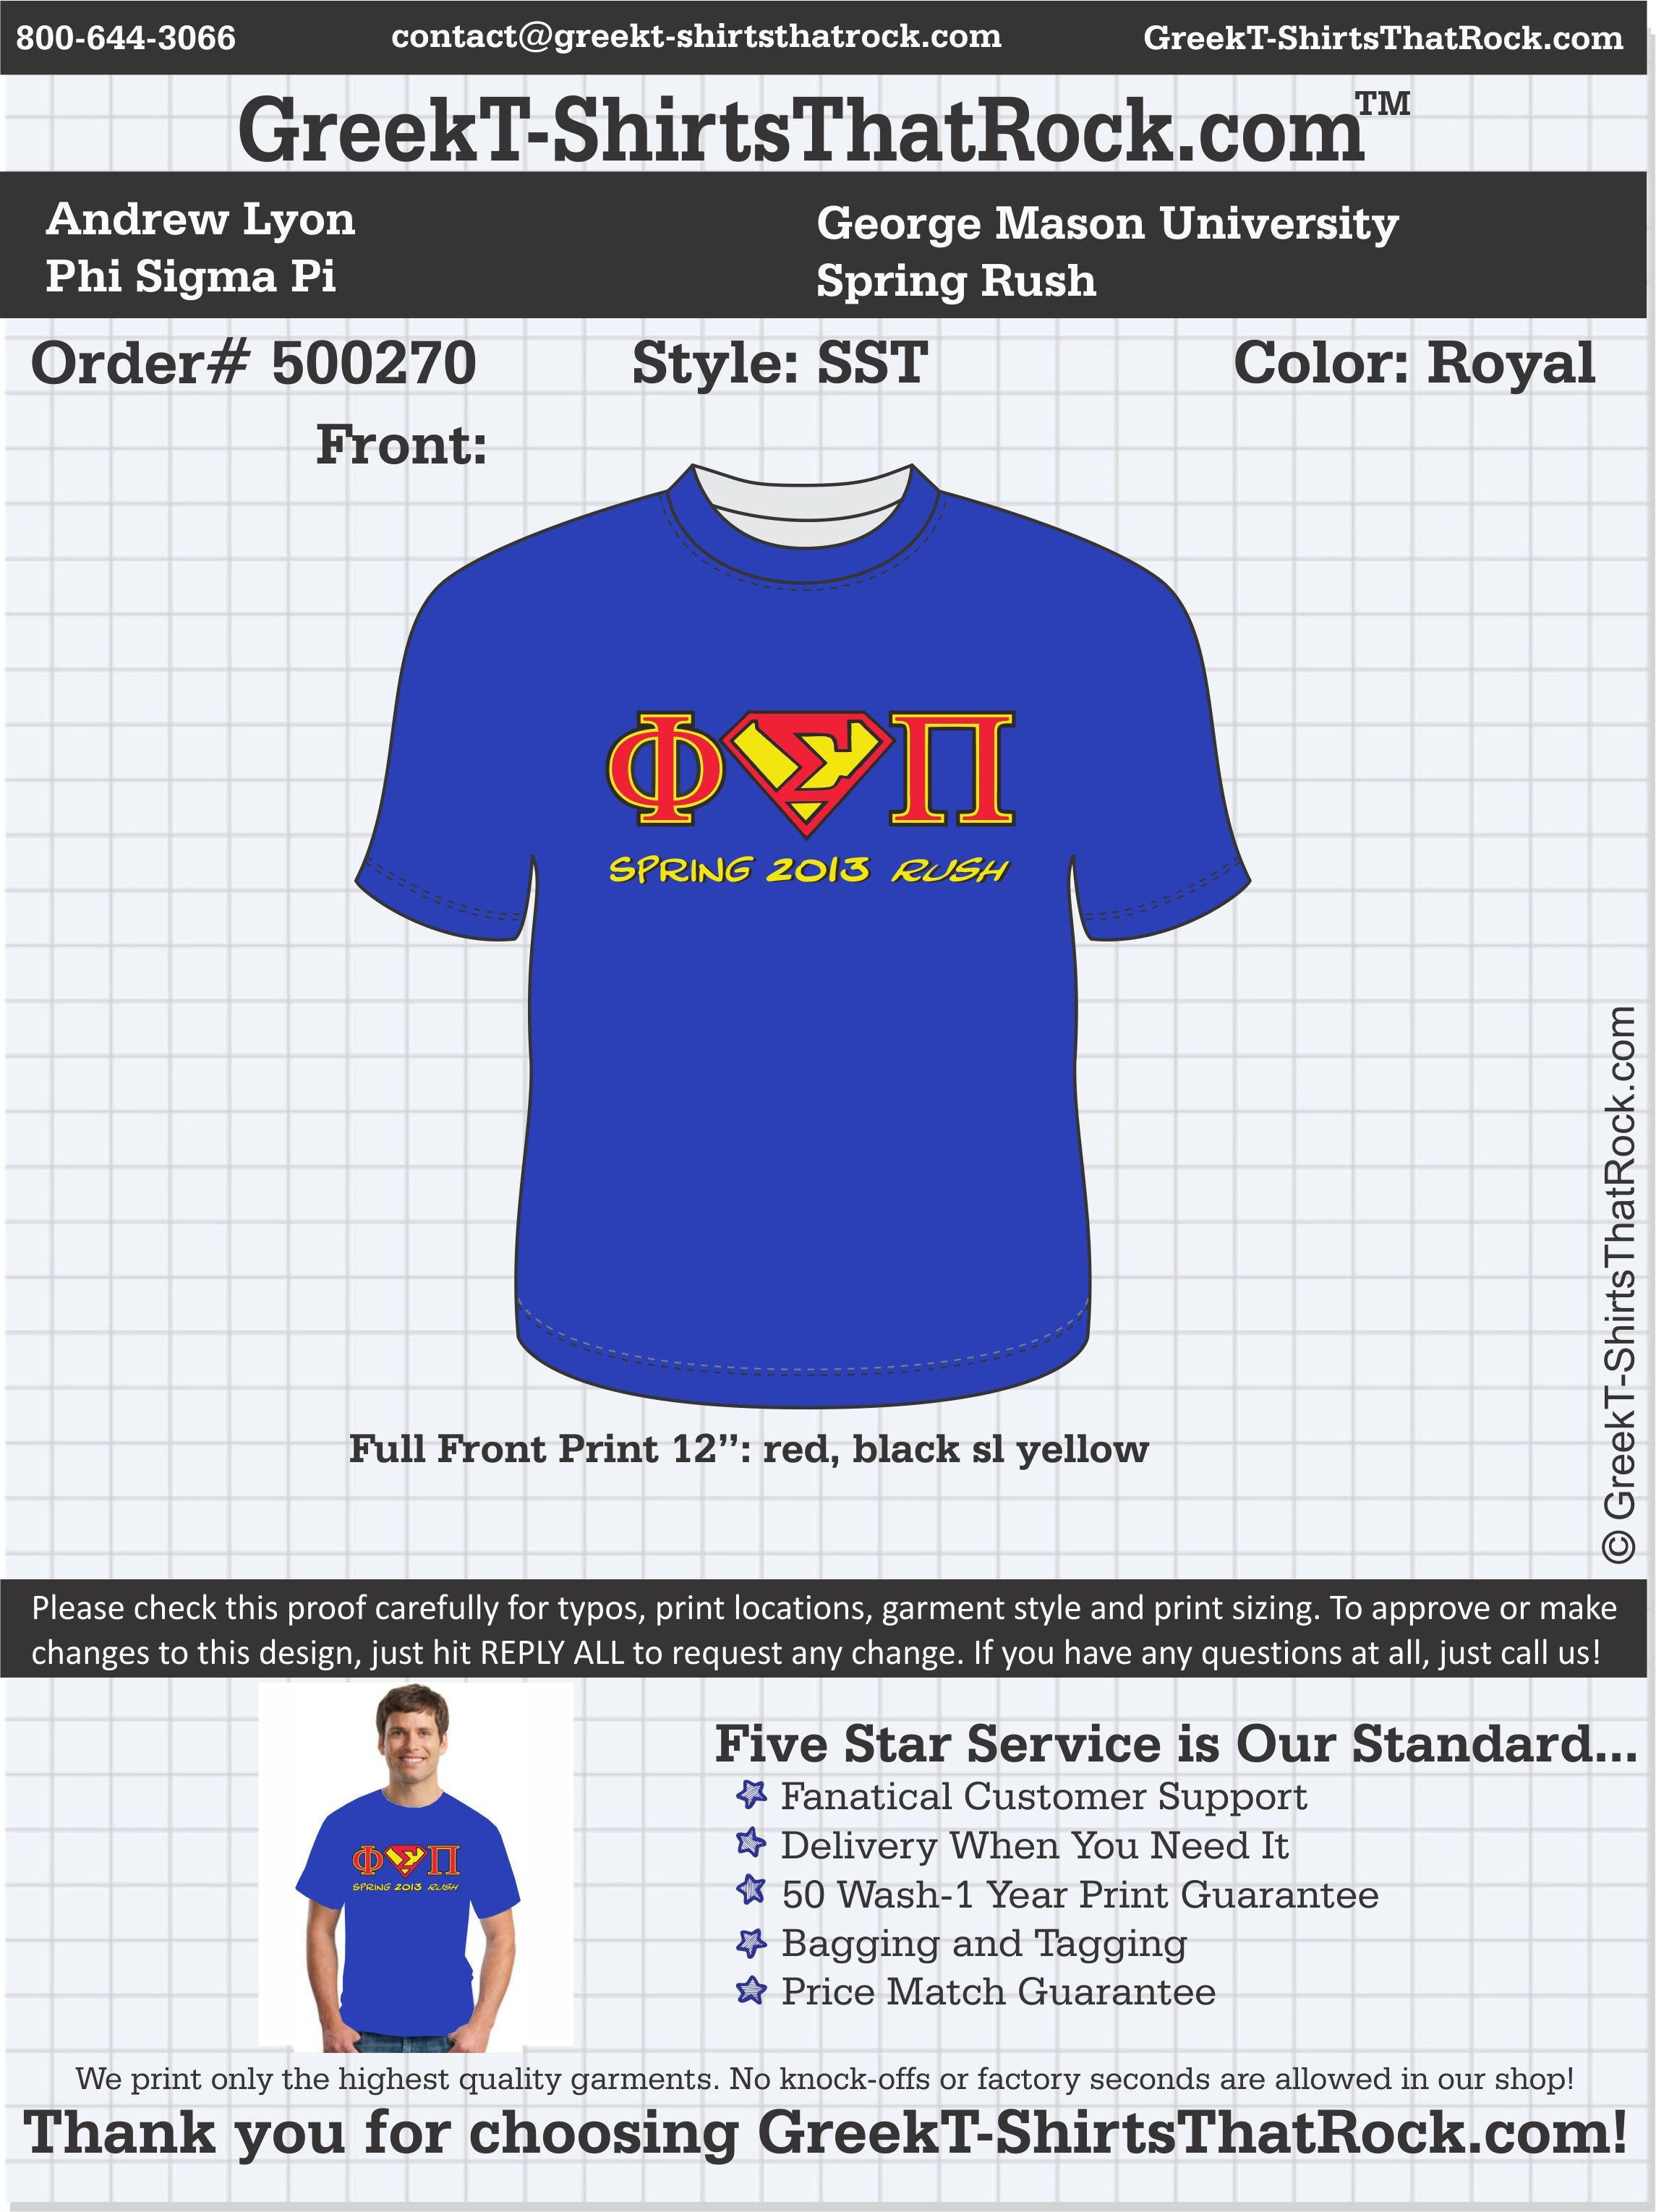 Design t shirt upload picture - Phi Sigma Pi T Shirts That Rock Phisigmapi Customize This Design For Your